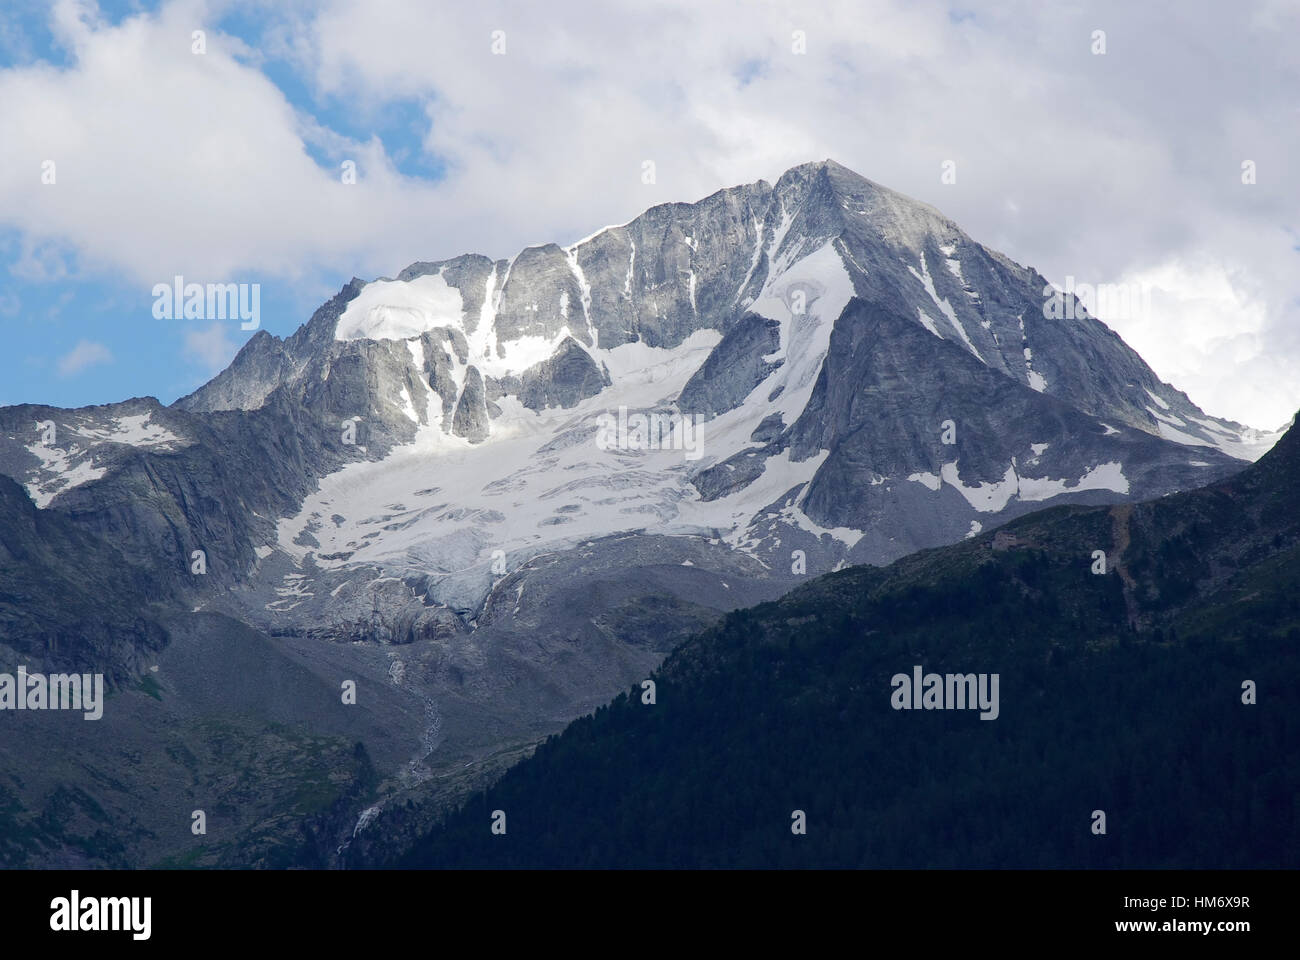 View of Mount Colllalto (Hochgall) from Rein in Taufers (Riva di Tures). - Stock Image